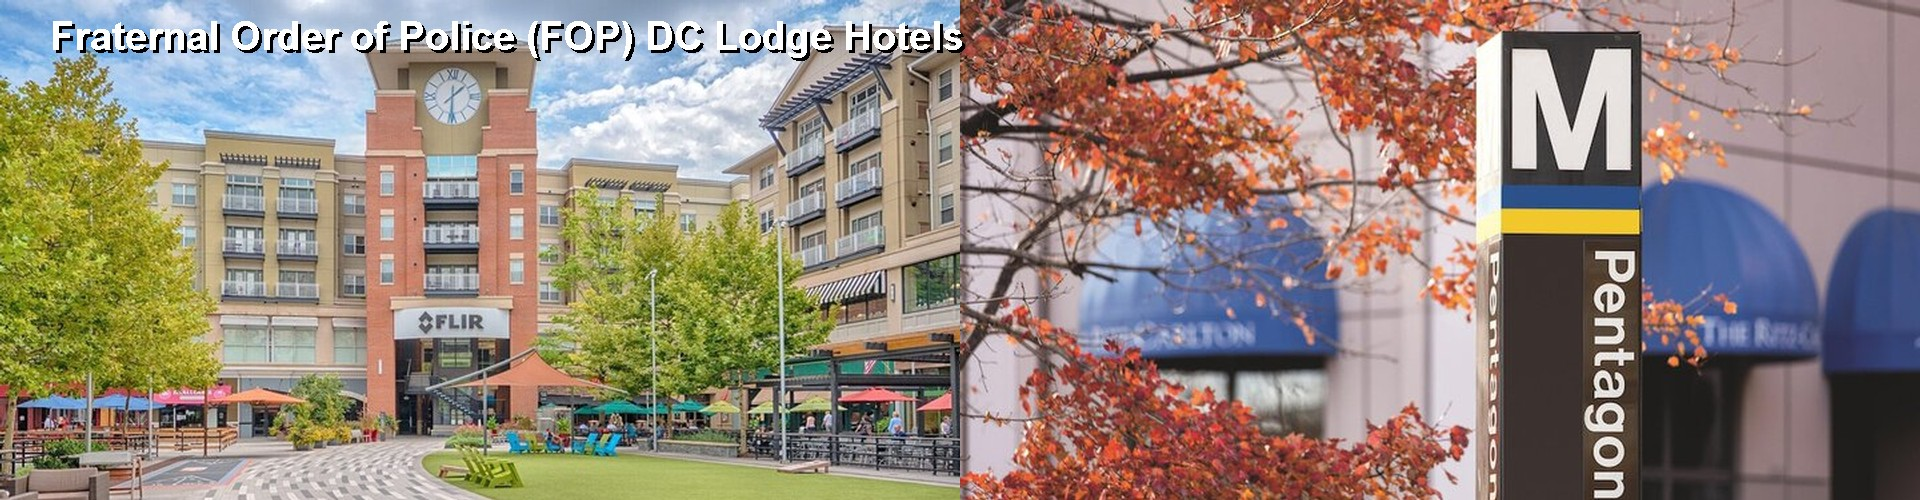 5 Best Hotels near Fraternal Order of Police (FOP) DC Lodge